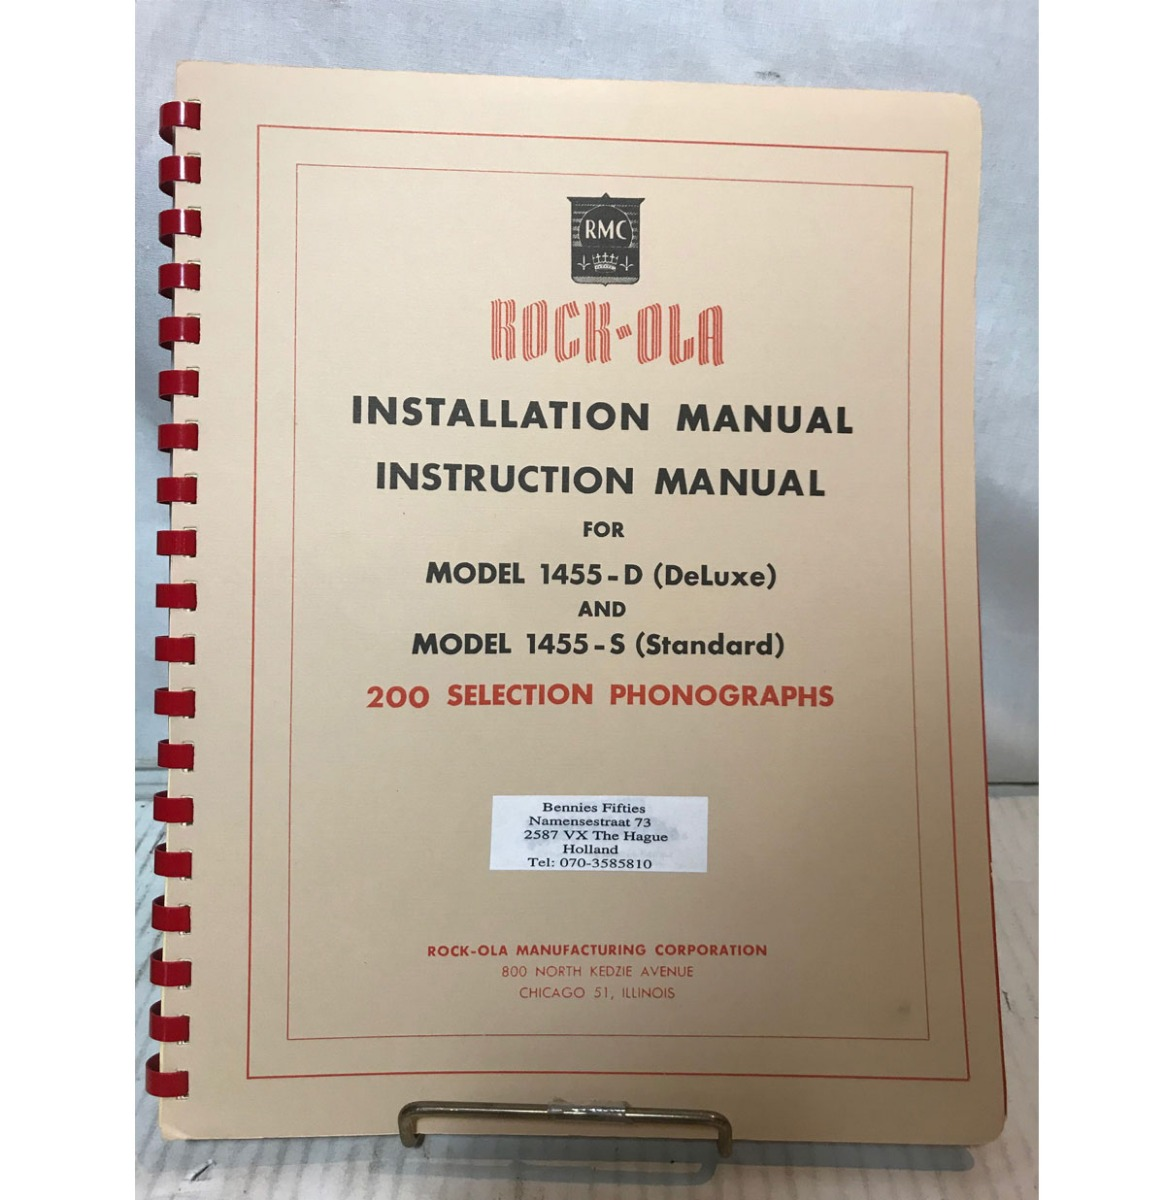 Rock-Ola 1455-D And 1455-S Jukebox Installation Manual